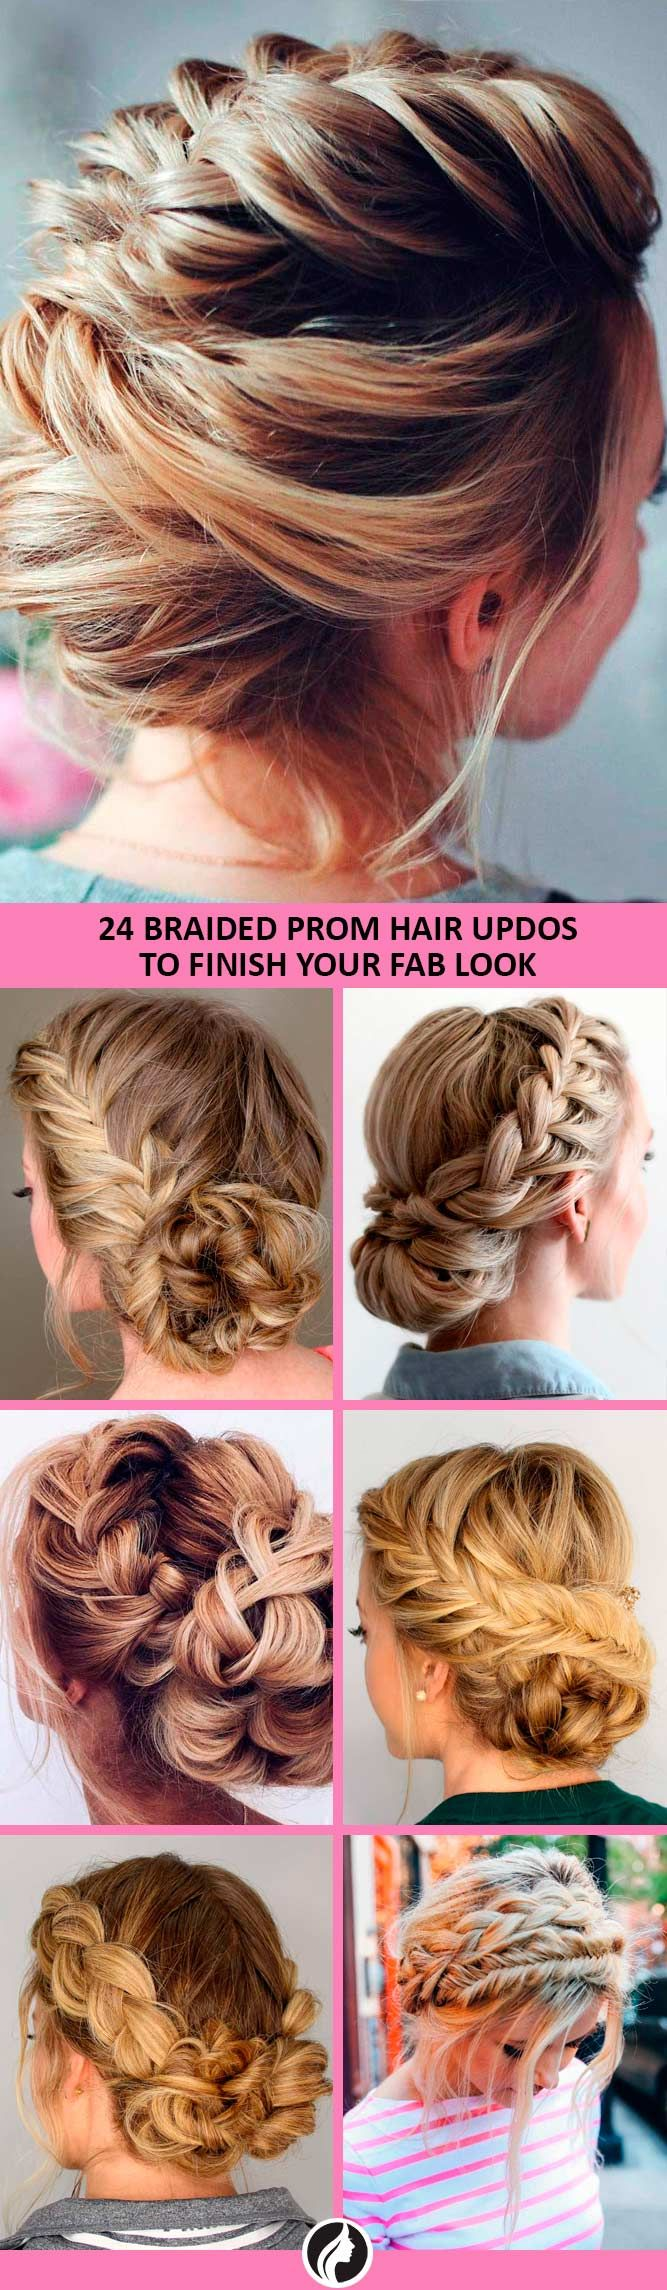 42 Braided Prom Hair Updos To Finish Your Fab Look Pinterest